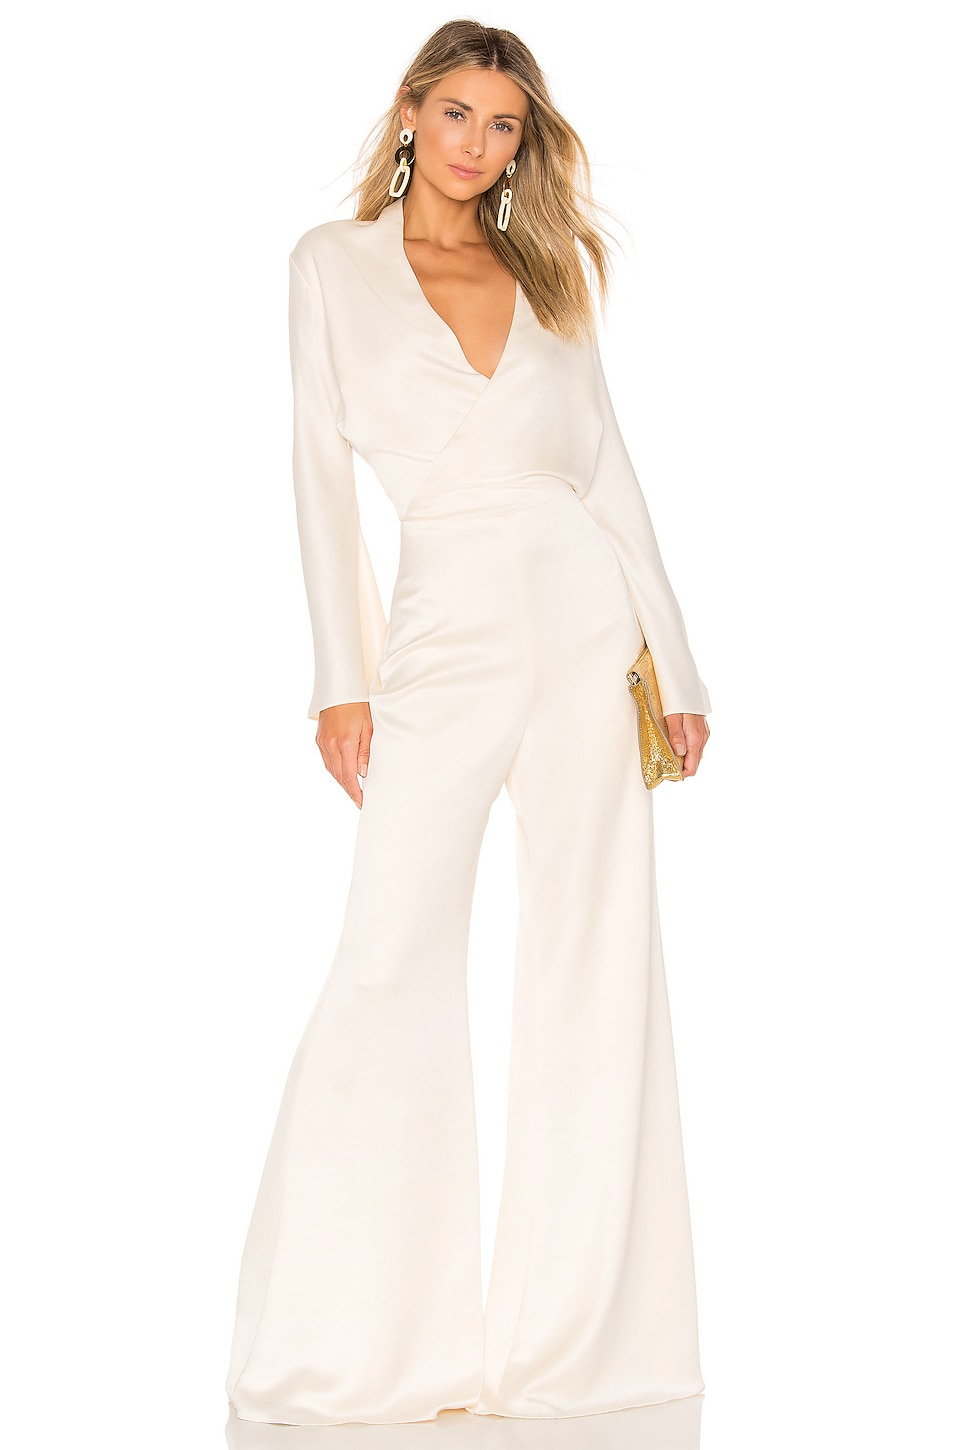 Alexis Raine Jumpsuit in Ivory